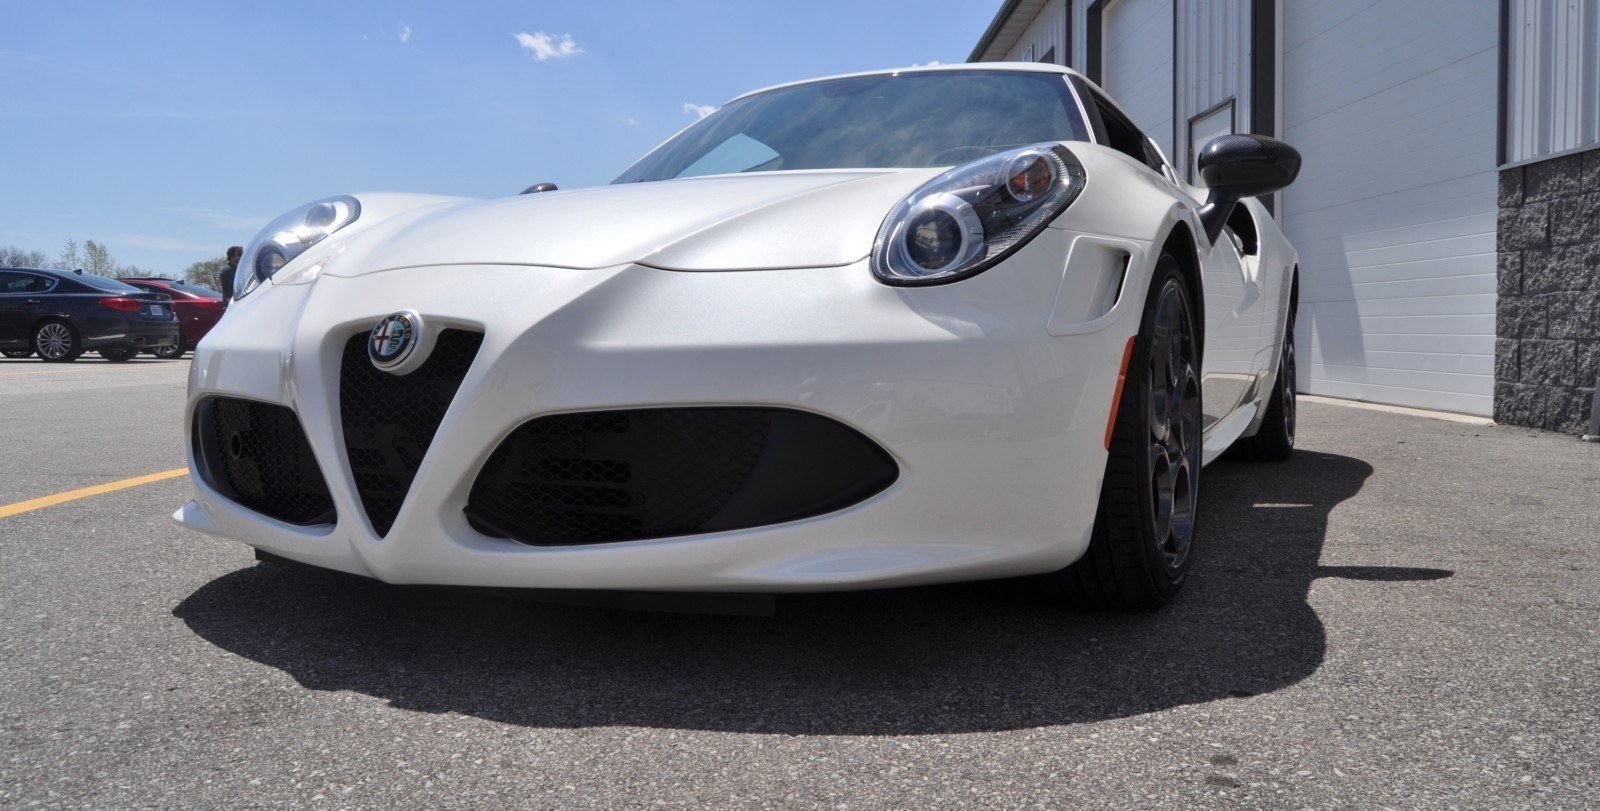 Gorgeous 2015 Alfa-Romeo 4C Revealed in Full USA Trim + New Headlights! 10